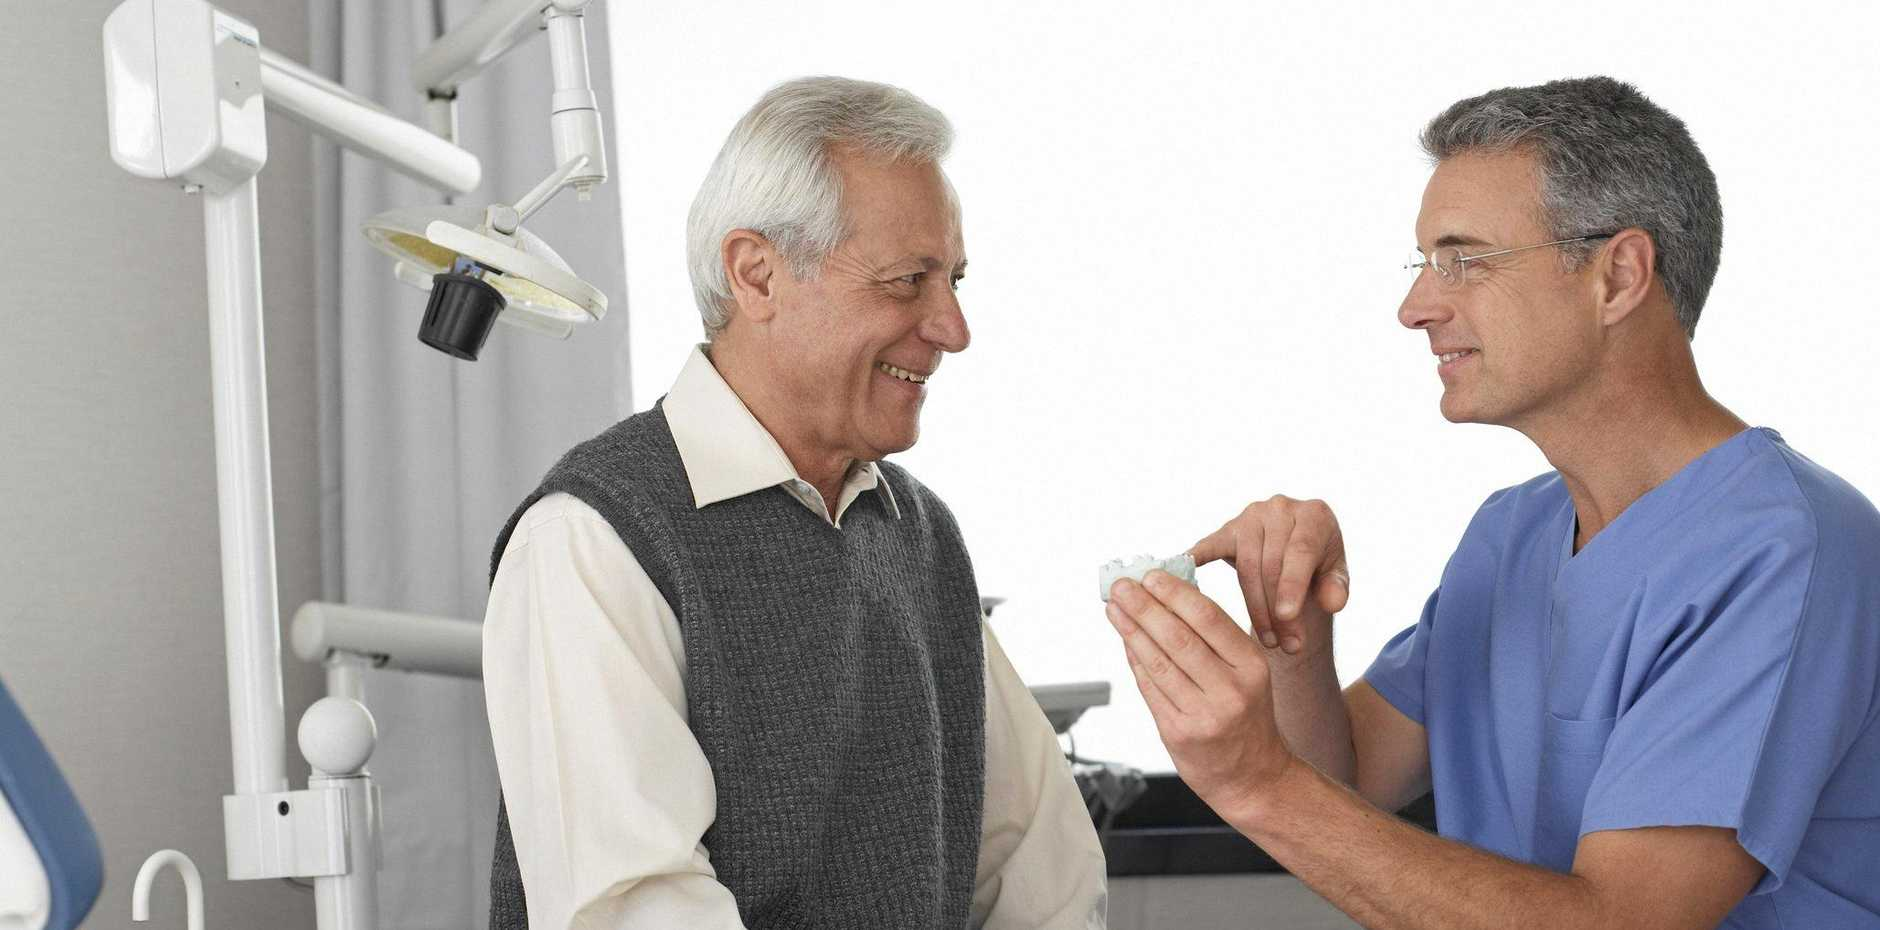 BEST CHOICE: Learn more about better dental health, and about implants and dentures.